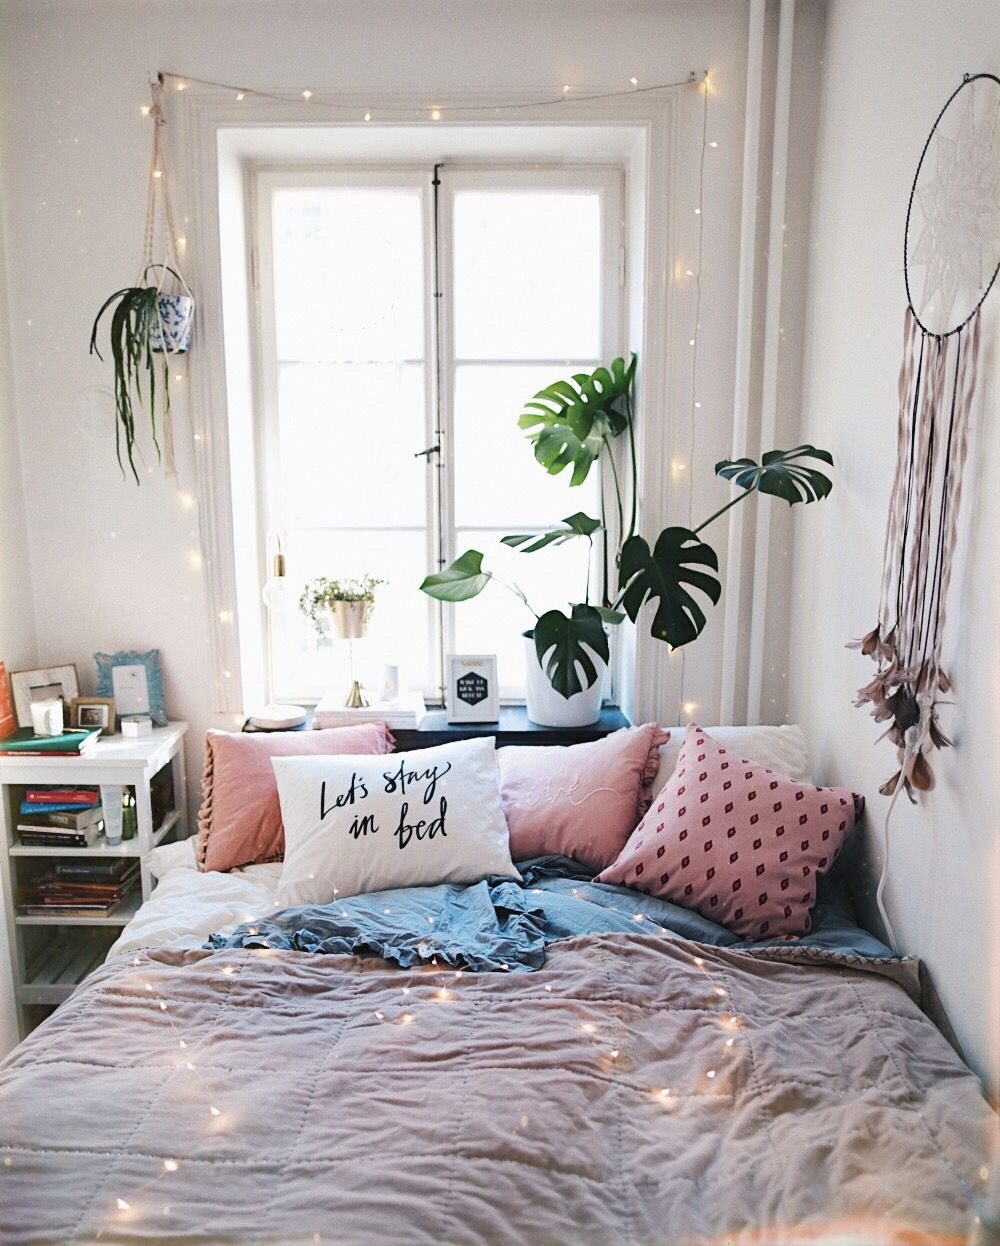 Pin van Alejandra Molina op Girls bedroom | Pinterest - Slaapkamer ...